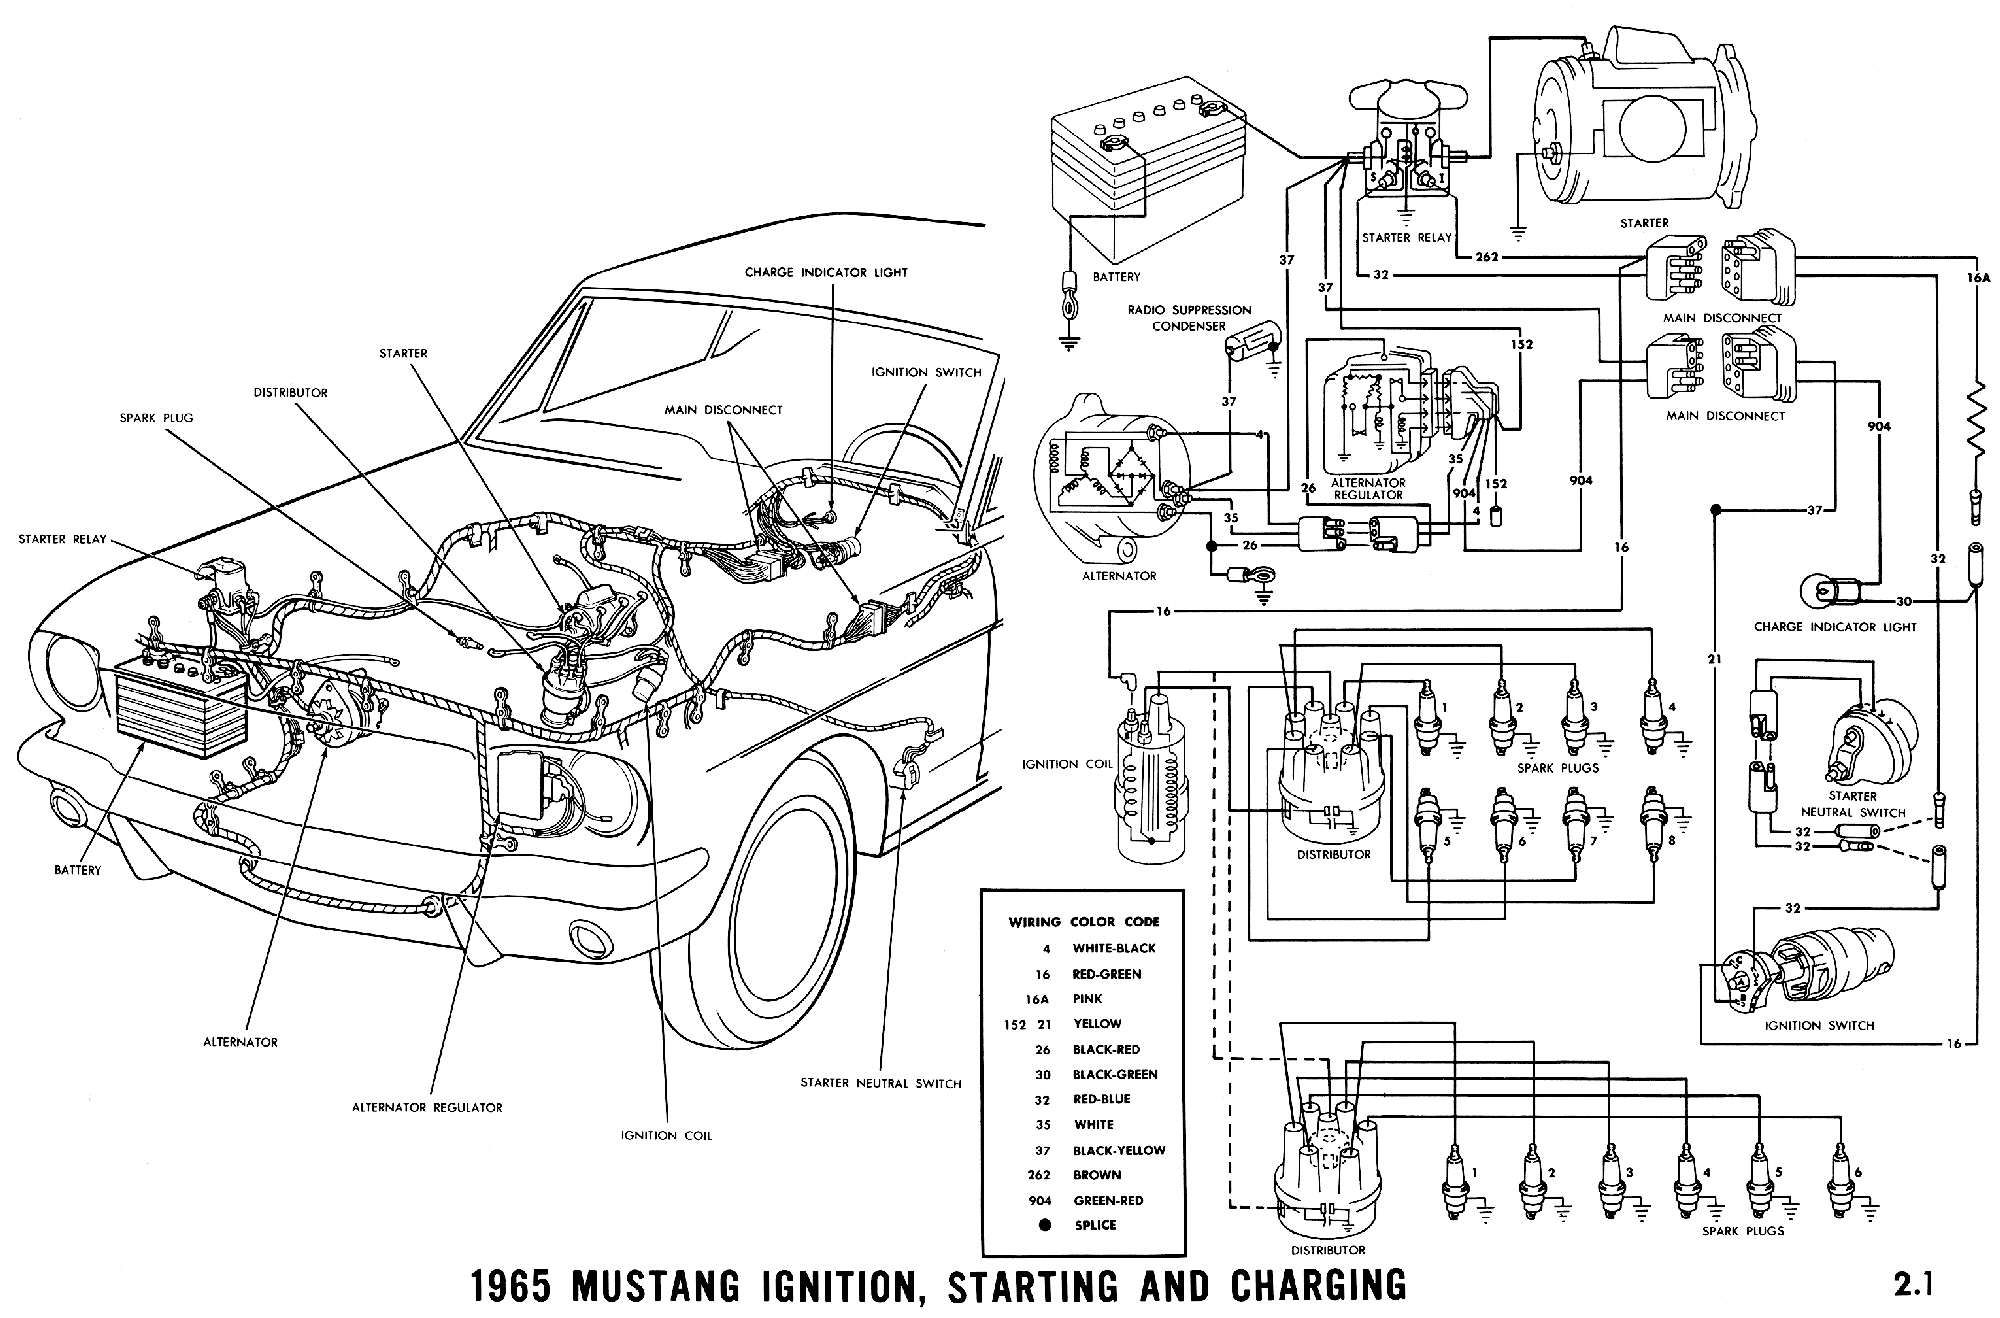 1994 toyota pickup tail lights wiring diagram 1965 mustang wiring diagrams - average joe restoration ... #8